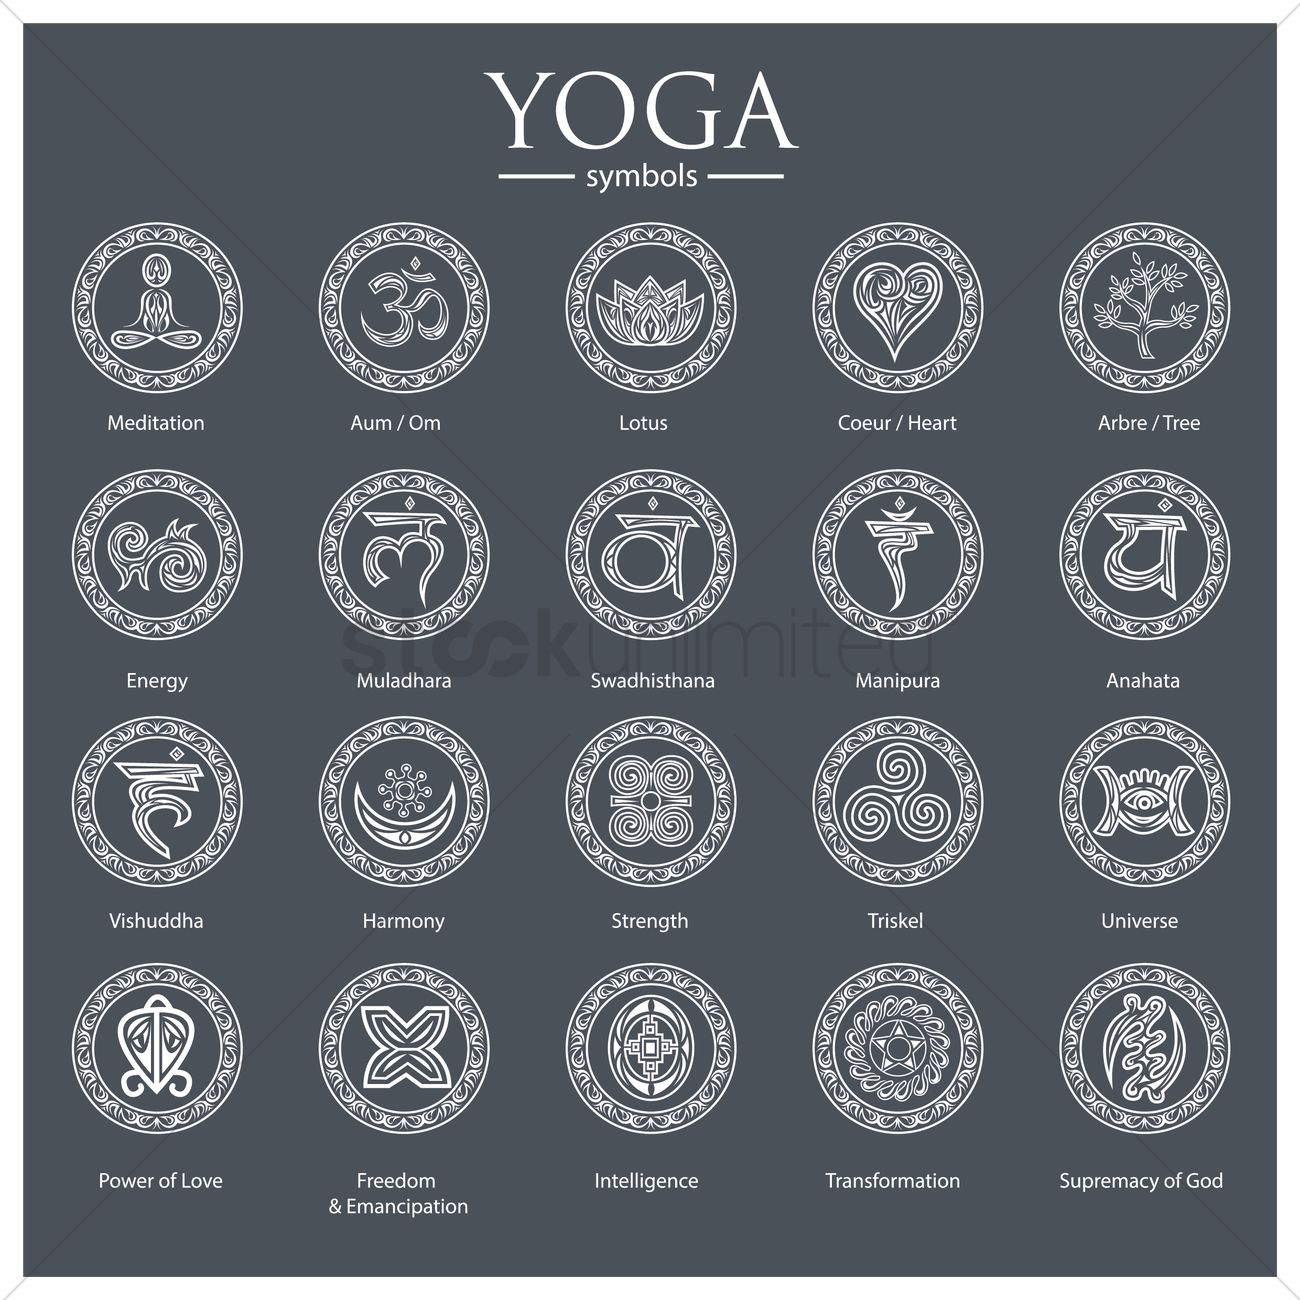 Set Of Yoga Symbols Vector Image 1517621 Stockunlimited